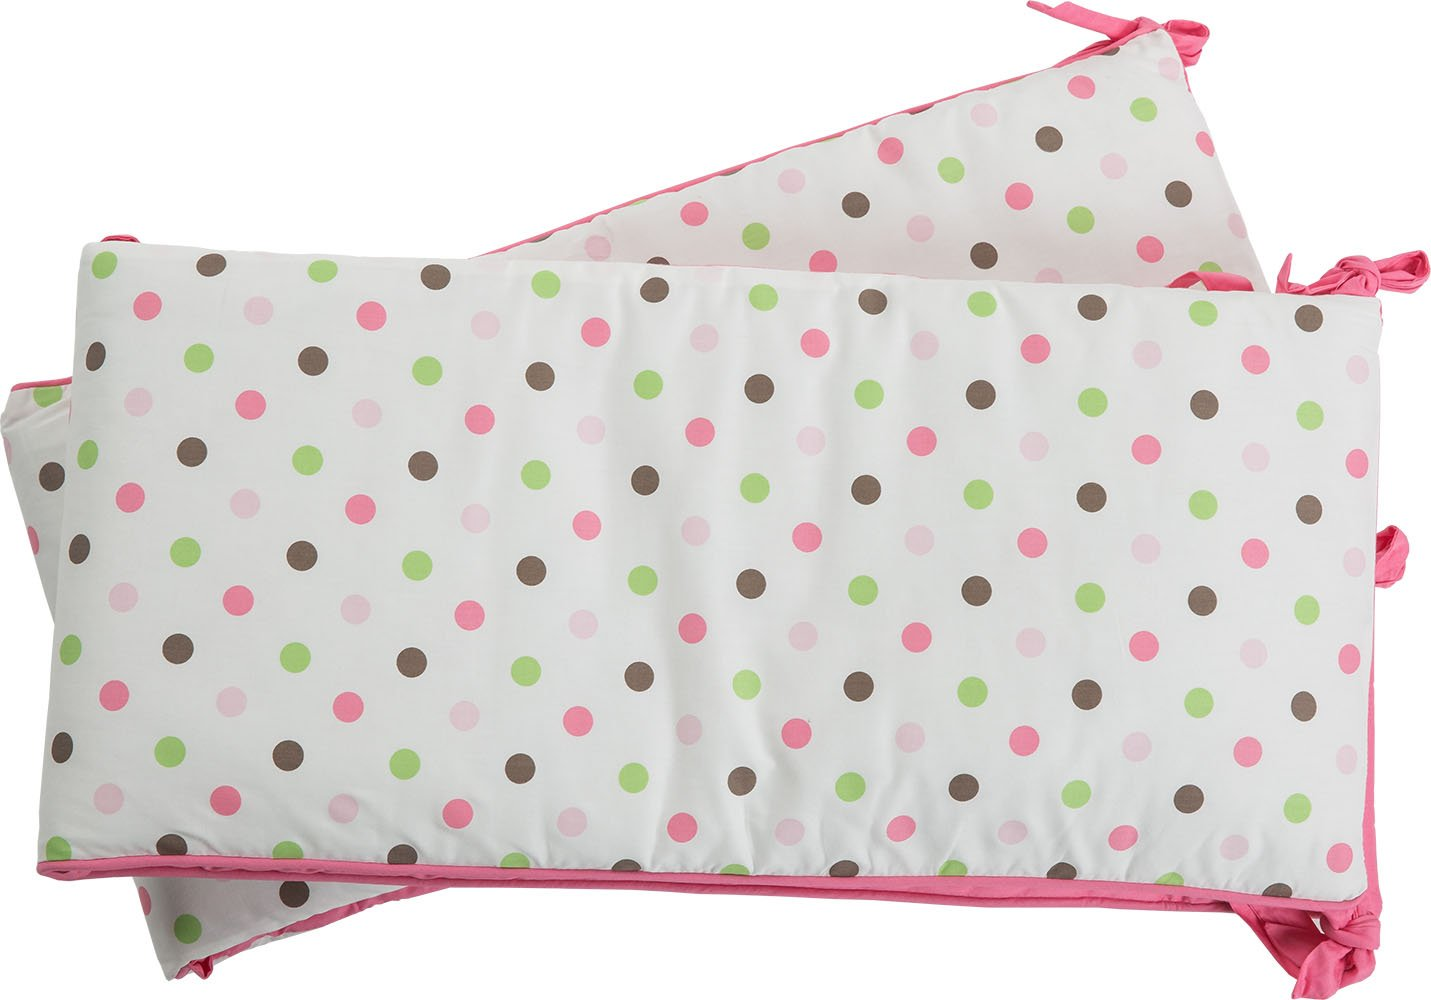 i-baby Cot Bumper Sets Baby Bedding Wrap Around Safety Protection For Baby Girls Bed With Head Guard Polka Dot Printed Crib Bumpers Kindergarten Nursery Pink 100% Cotton 2Pcs(30cmx68cm) + 2Pcs(30cmx130cm)